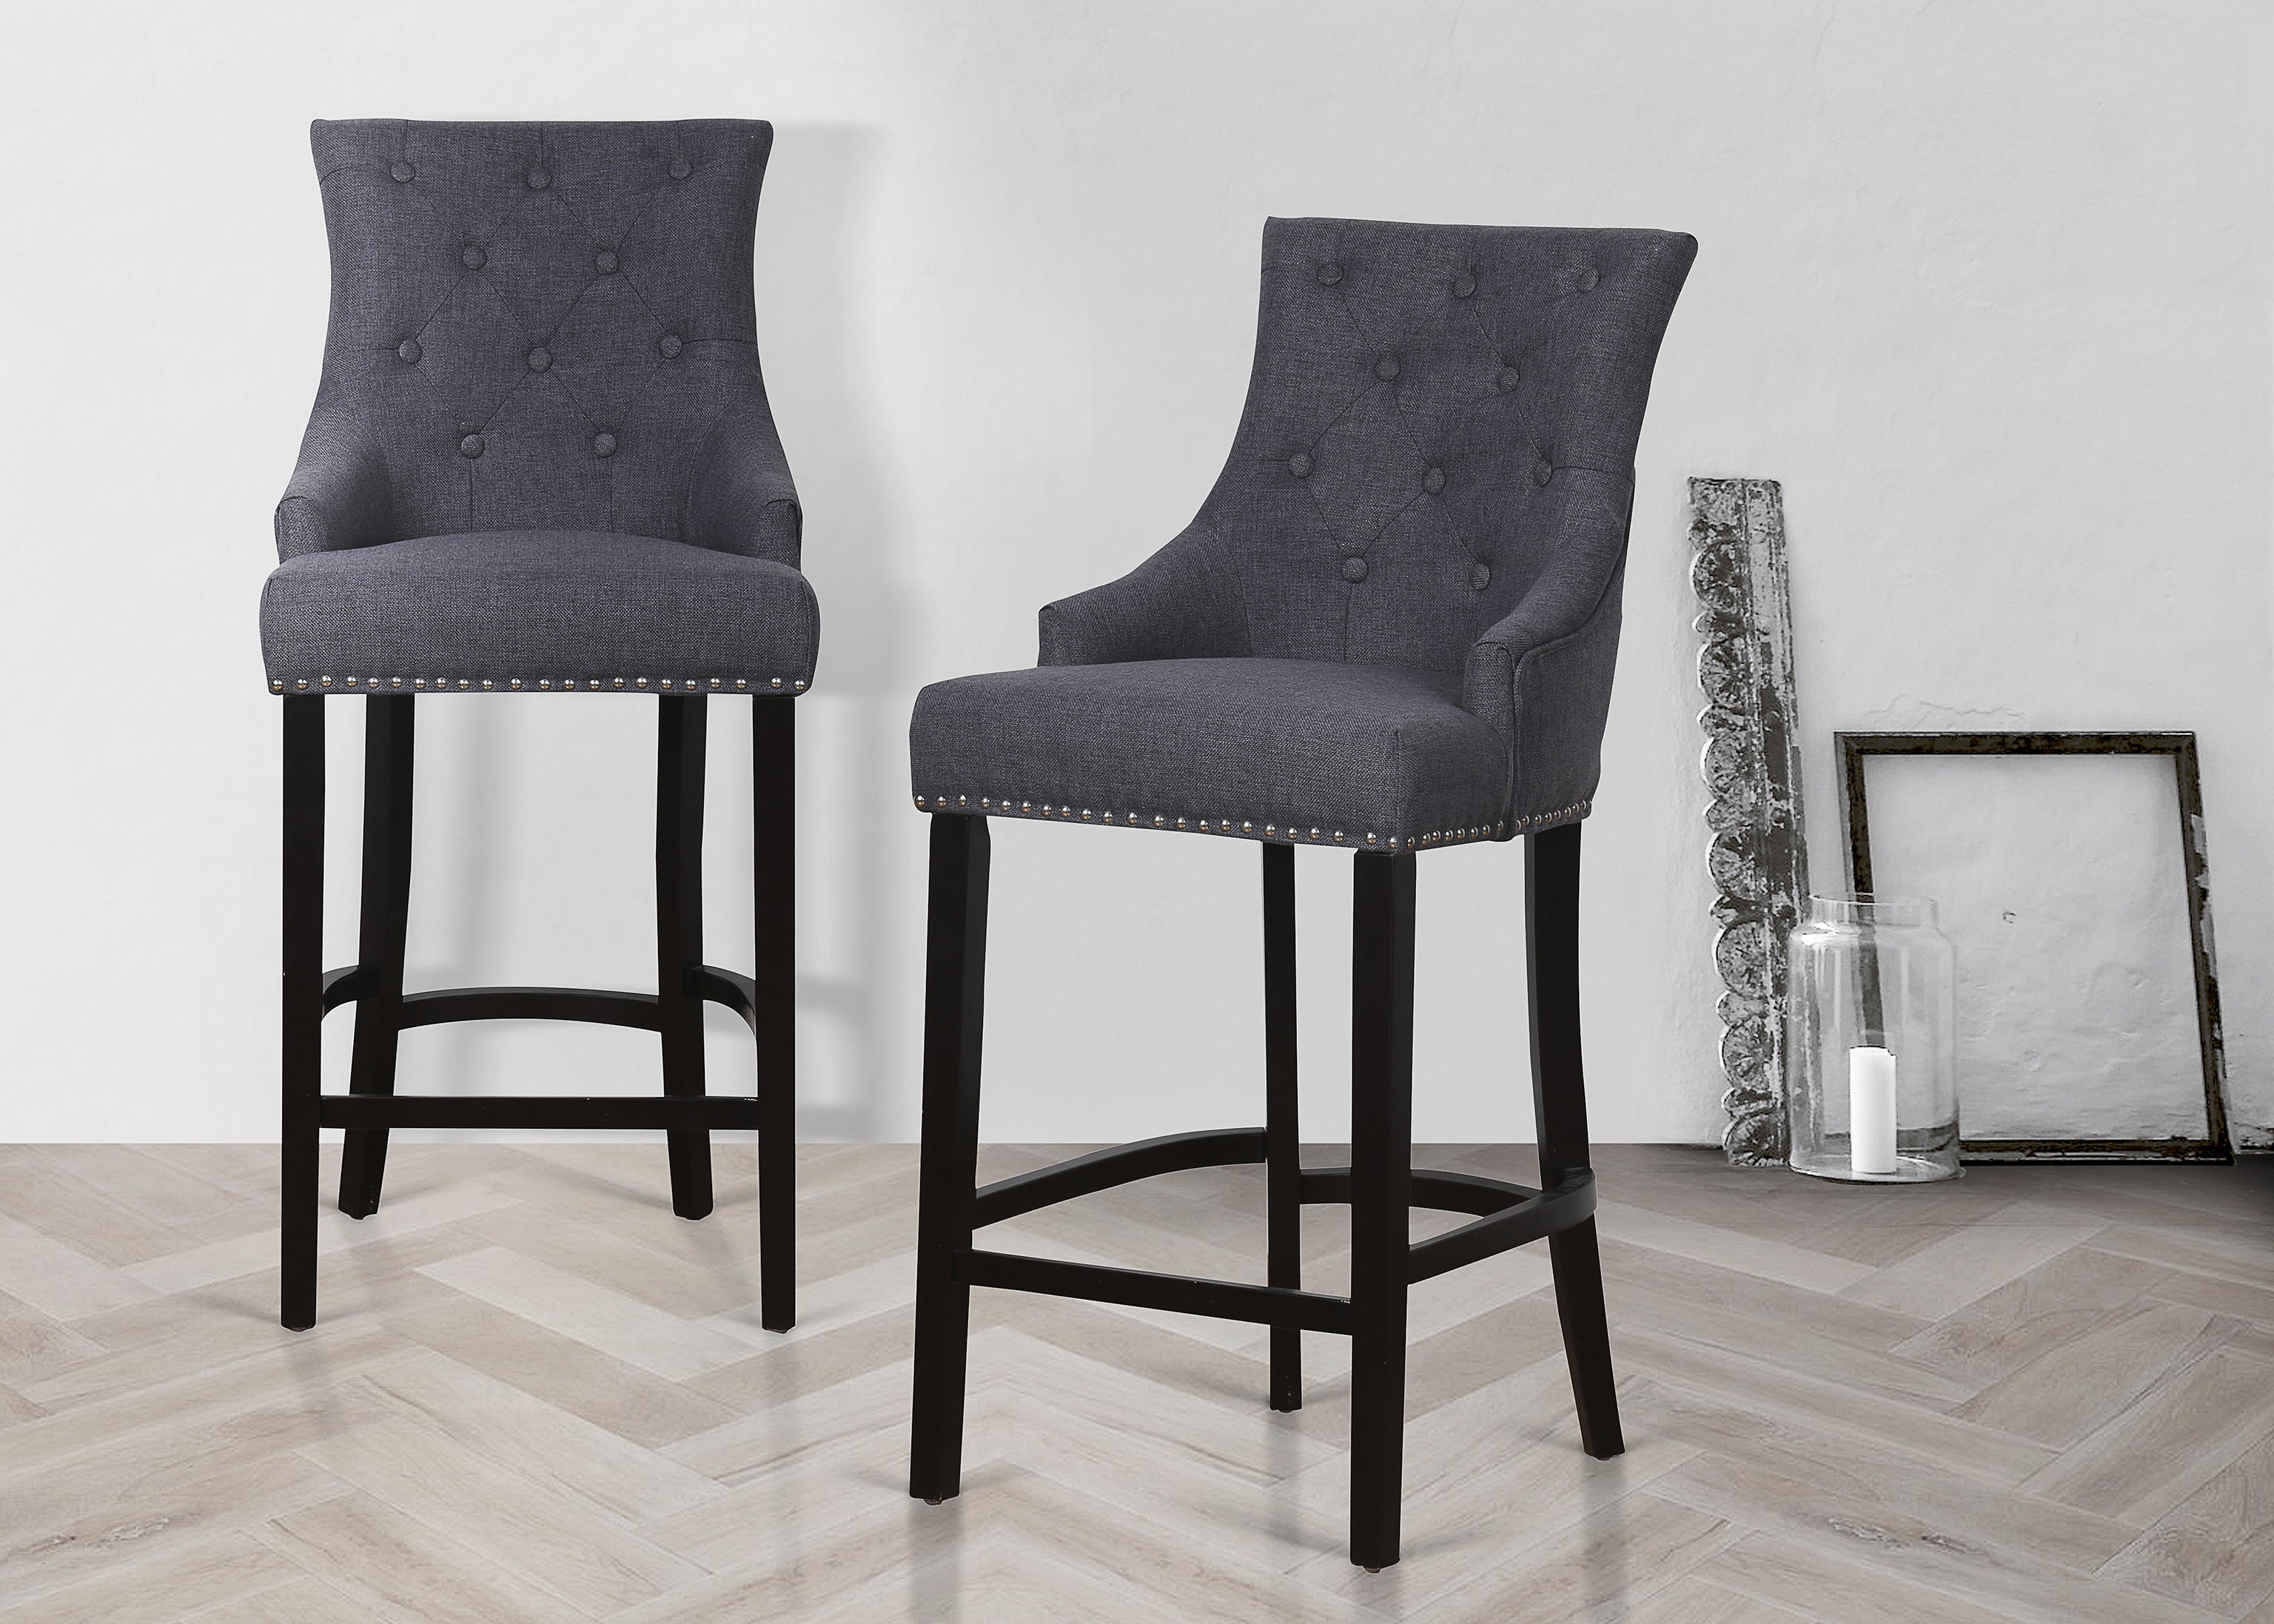 Description fabric barstool with pin tuck button detailing and high backrest this breakfast bar stool has fabric upholstery studded edges and would fit